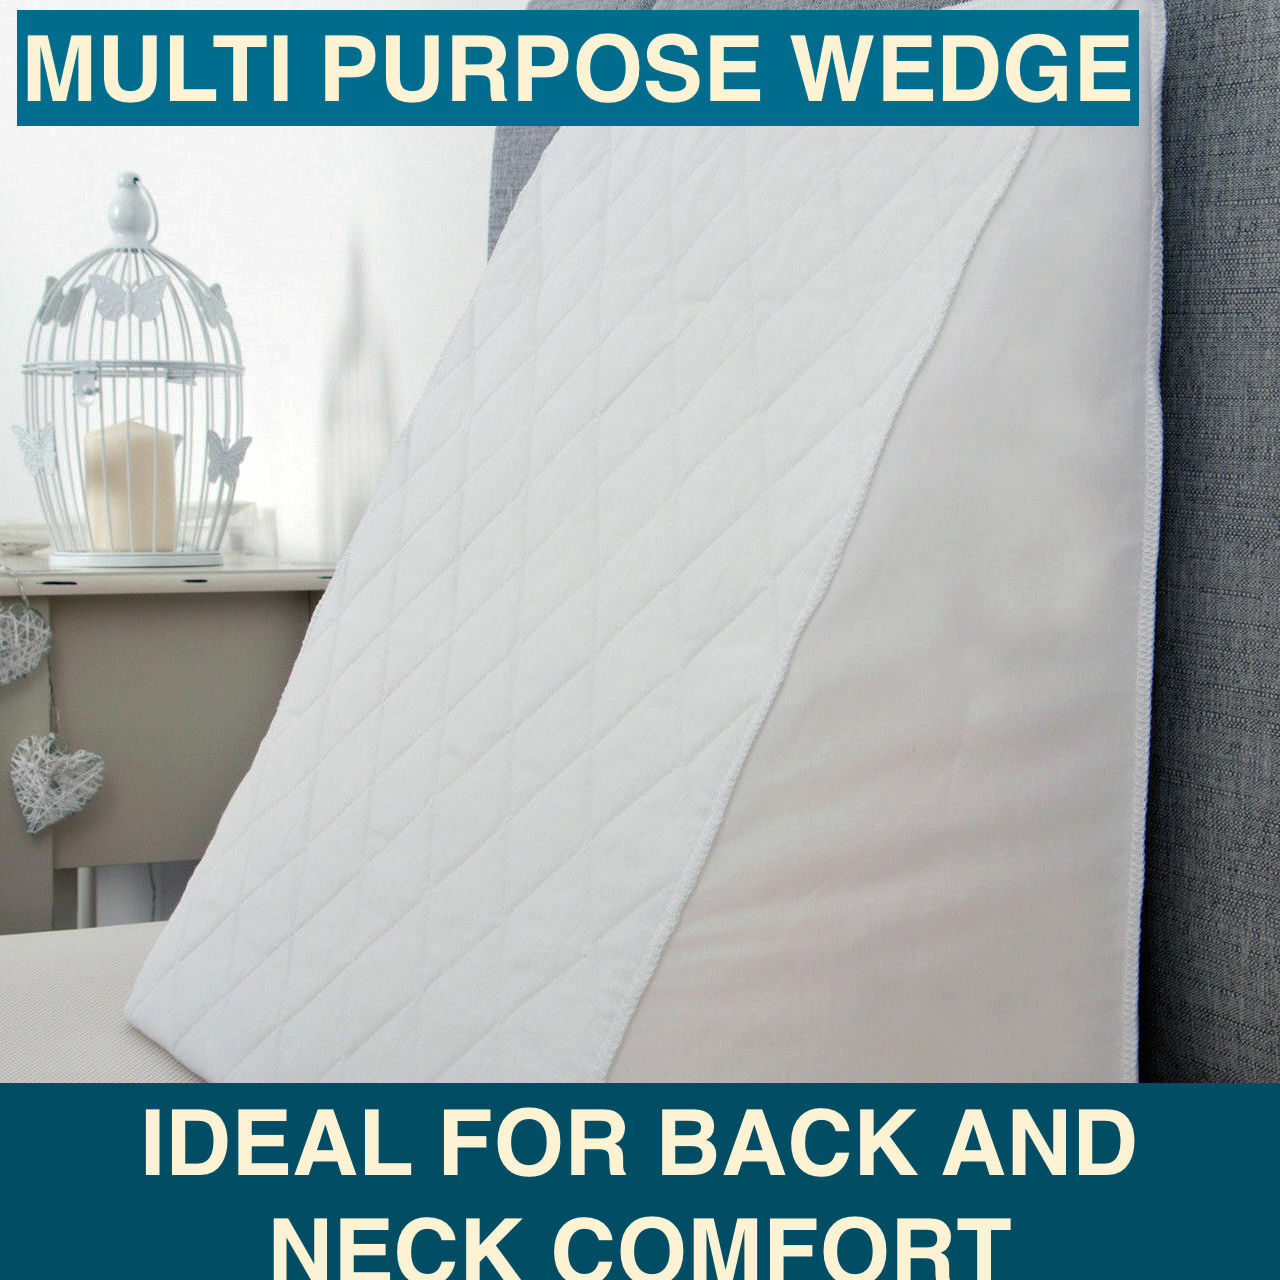 Acid Reflux Remedy Foam Bed Wedge Pillow Support Comfort